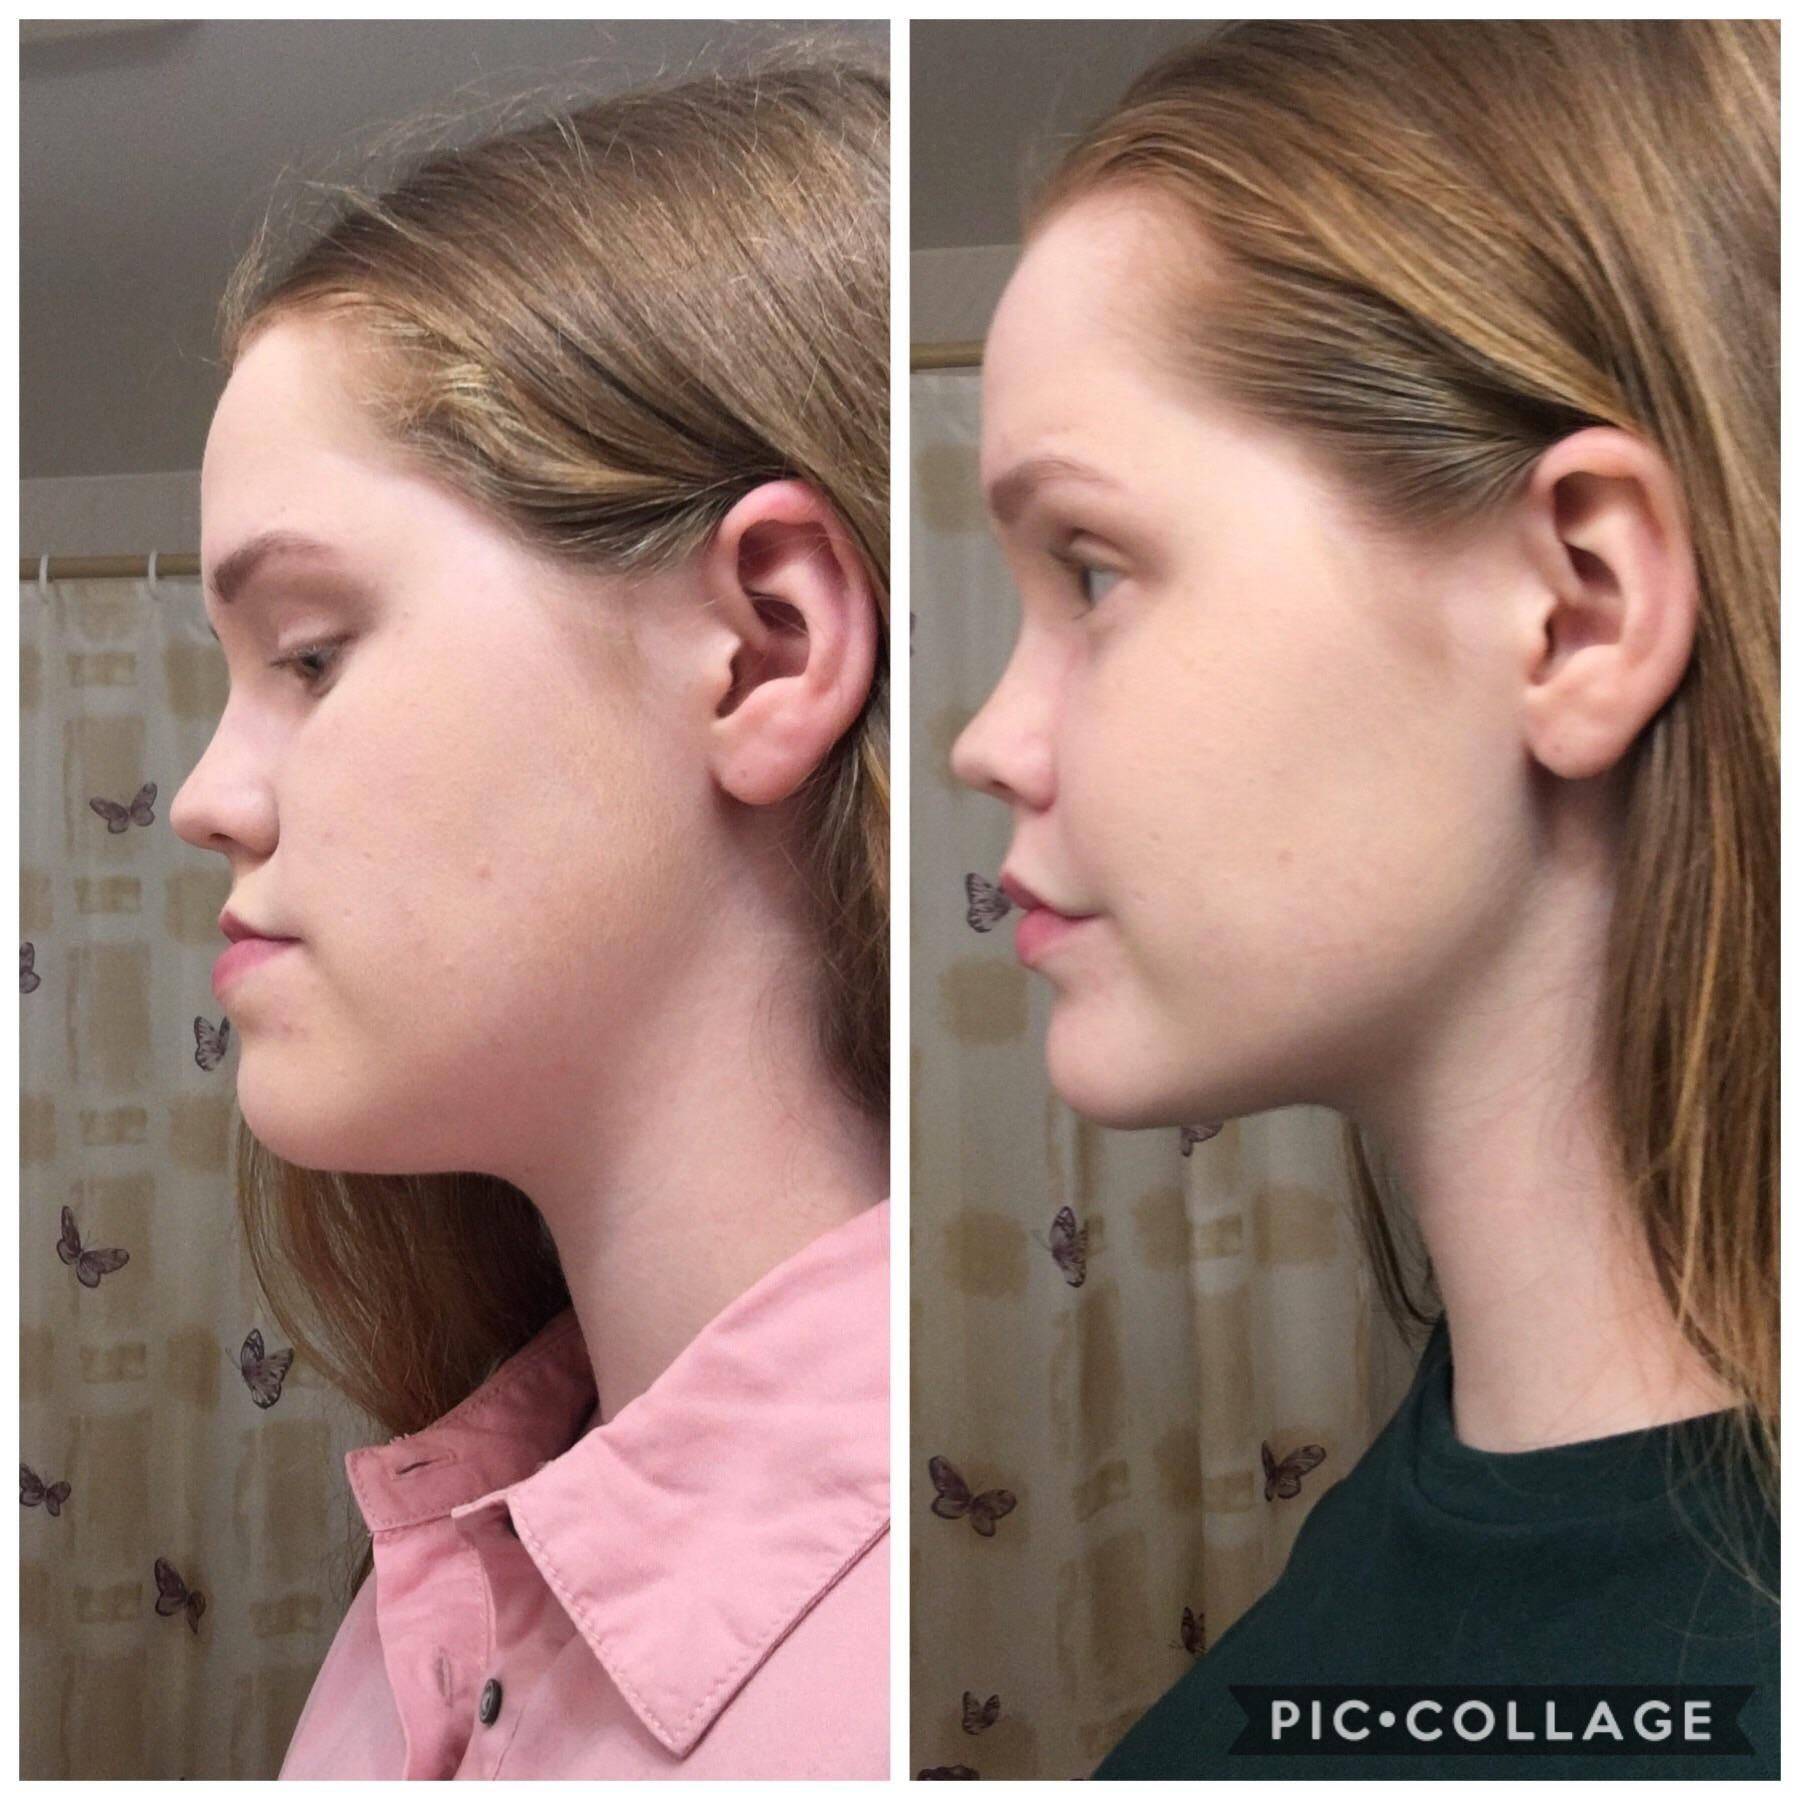 Pin by magget on Jaw surgery in 2020 Jaw surgery, Tmj